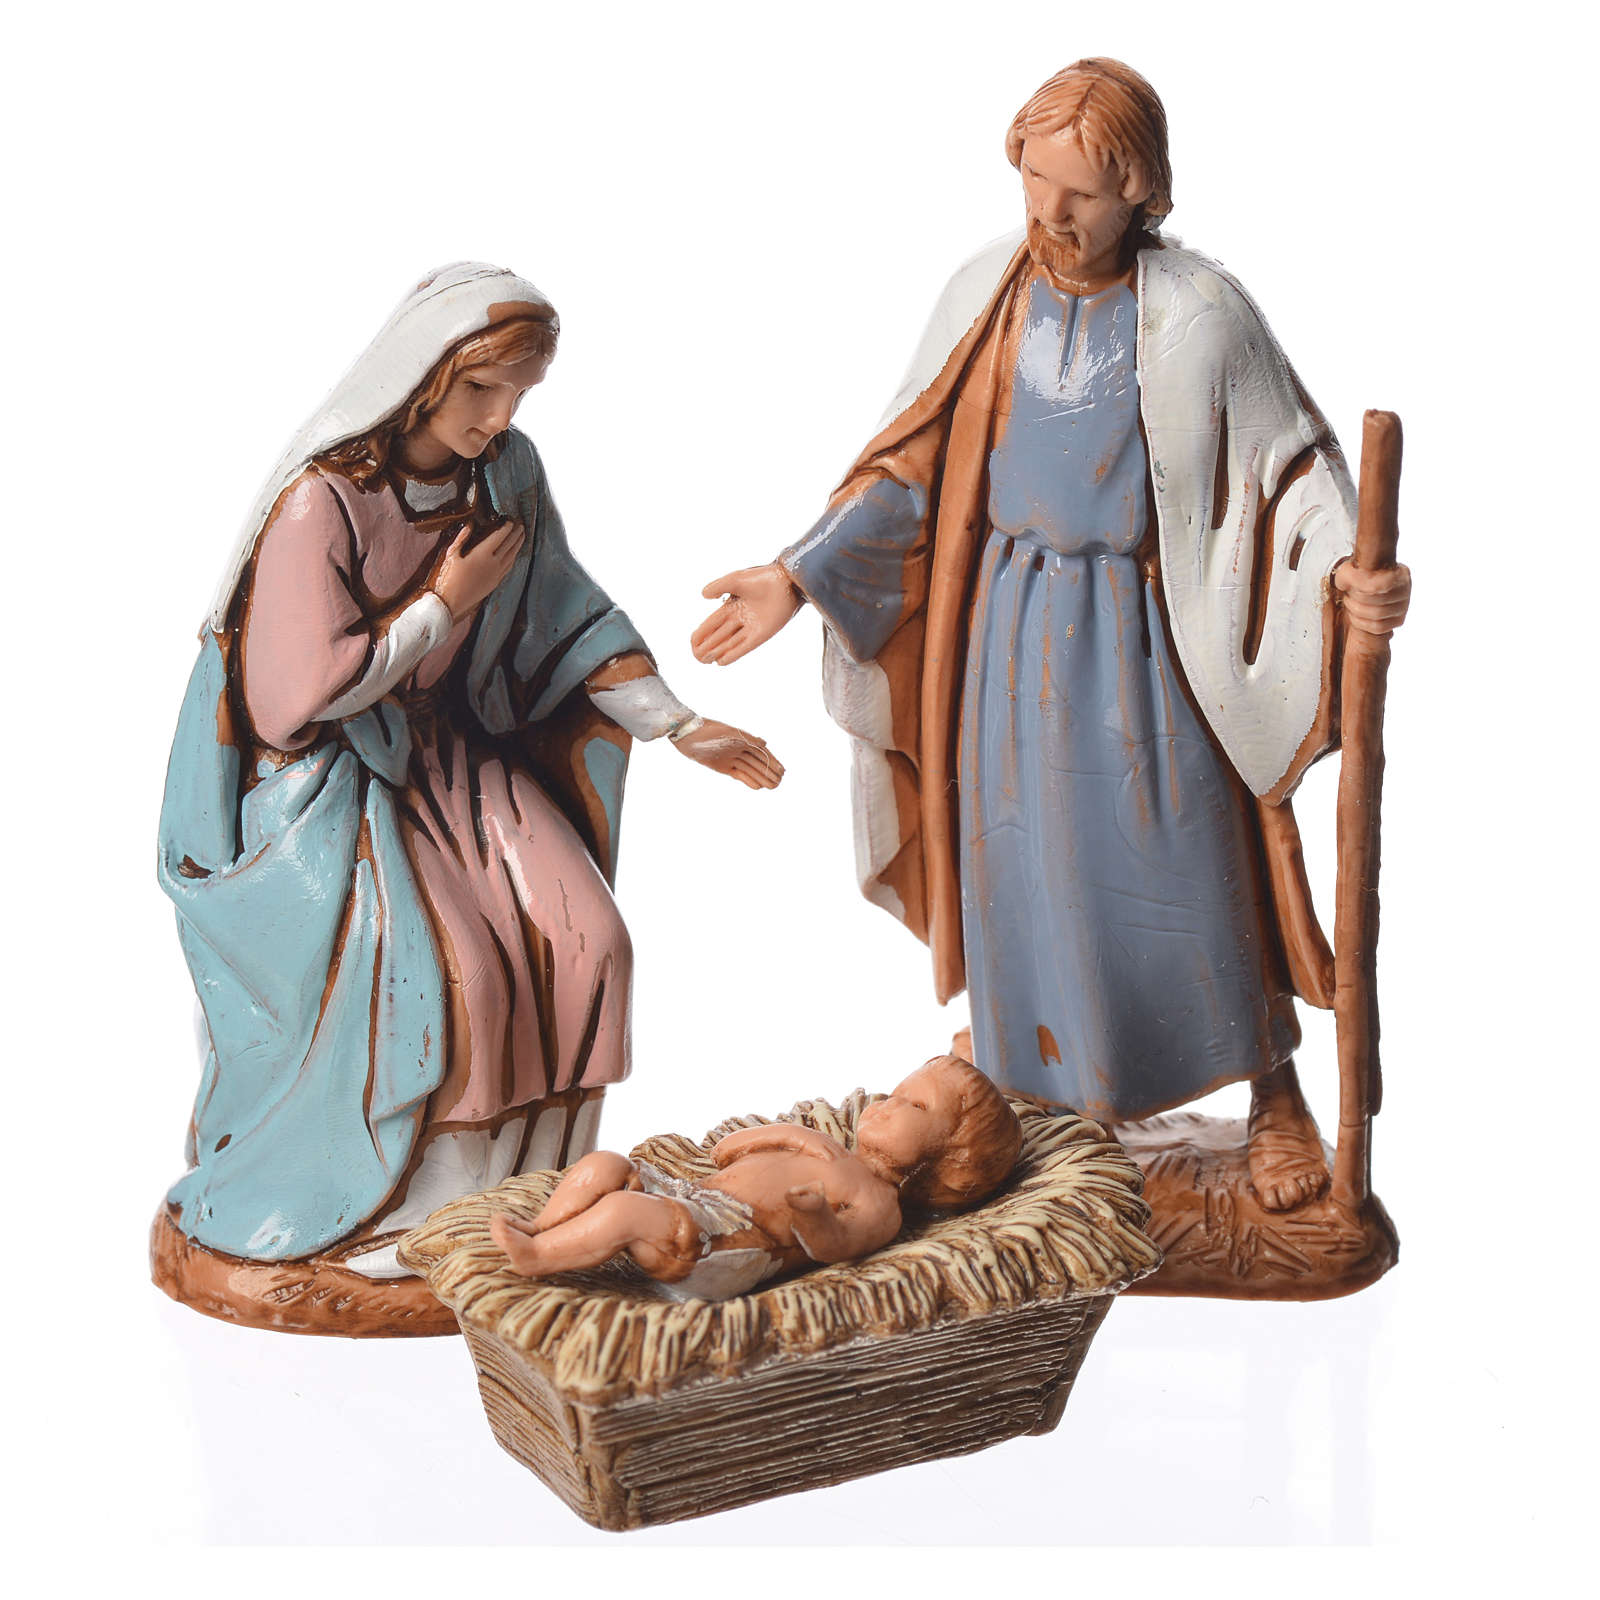 Nativity Scene figurines by Moranduzzo 6.5cm, Arabian style, 6 pieces 4